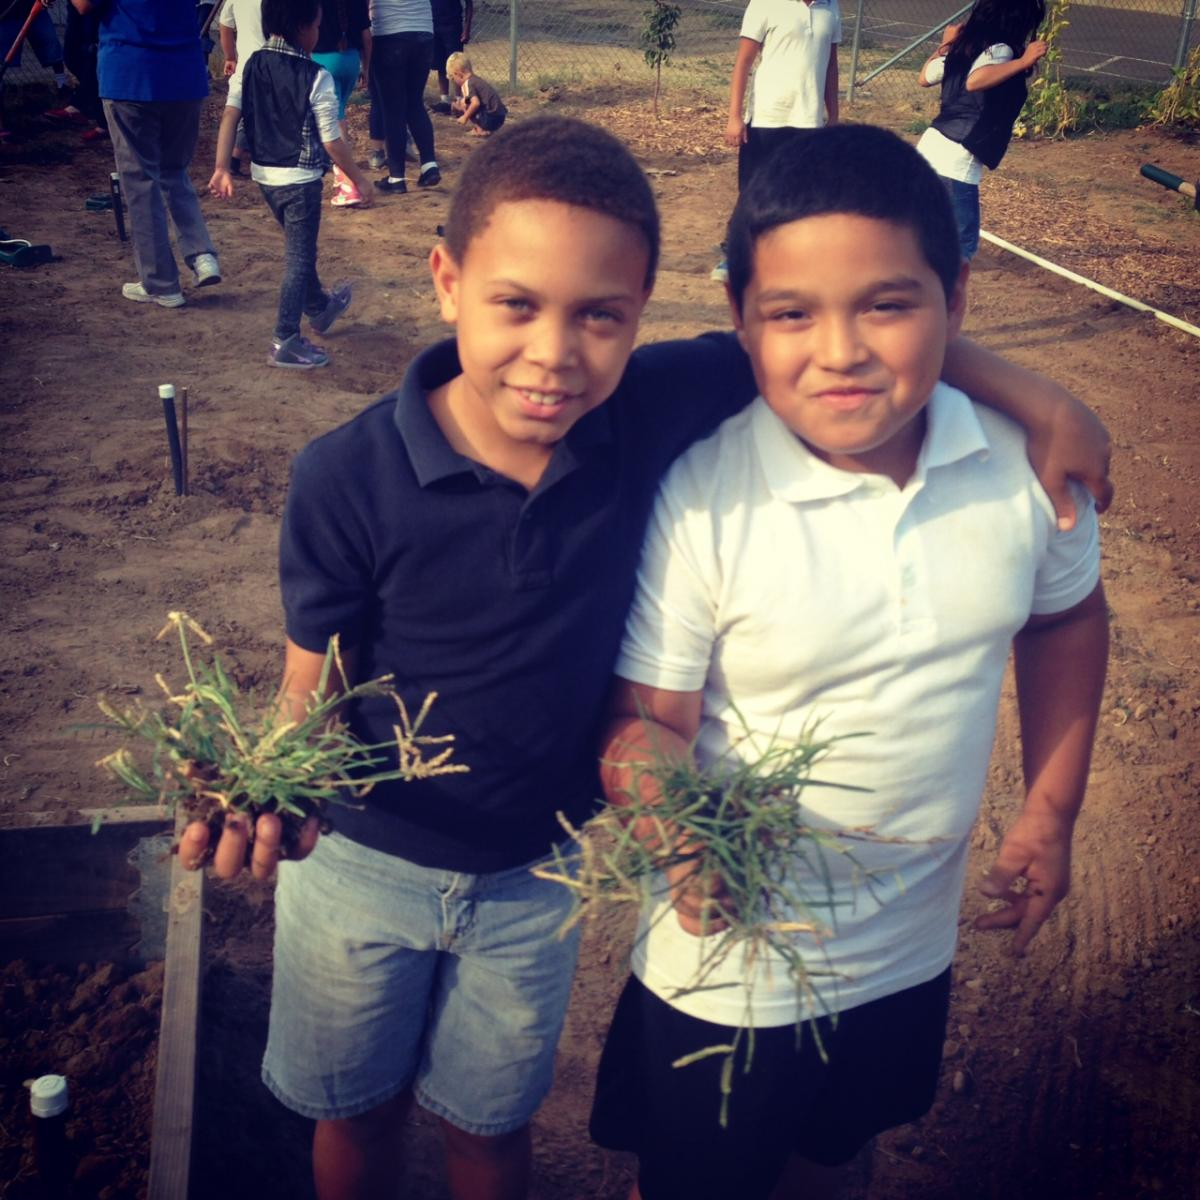 Image of Pacific Elementary's 'Day of Service'